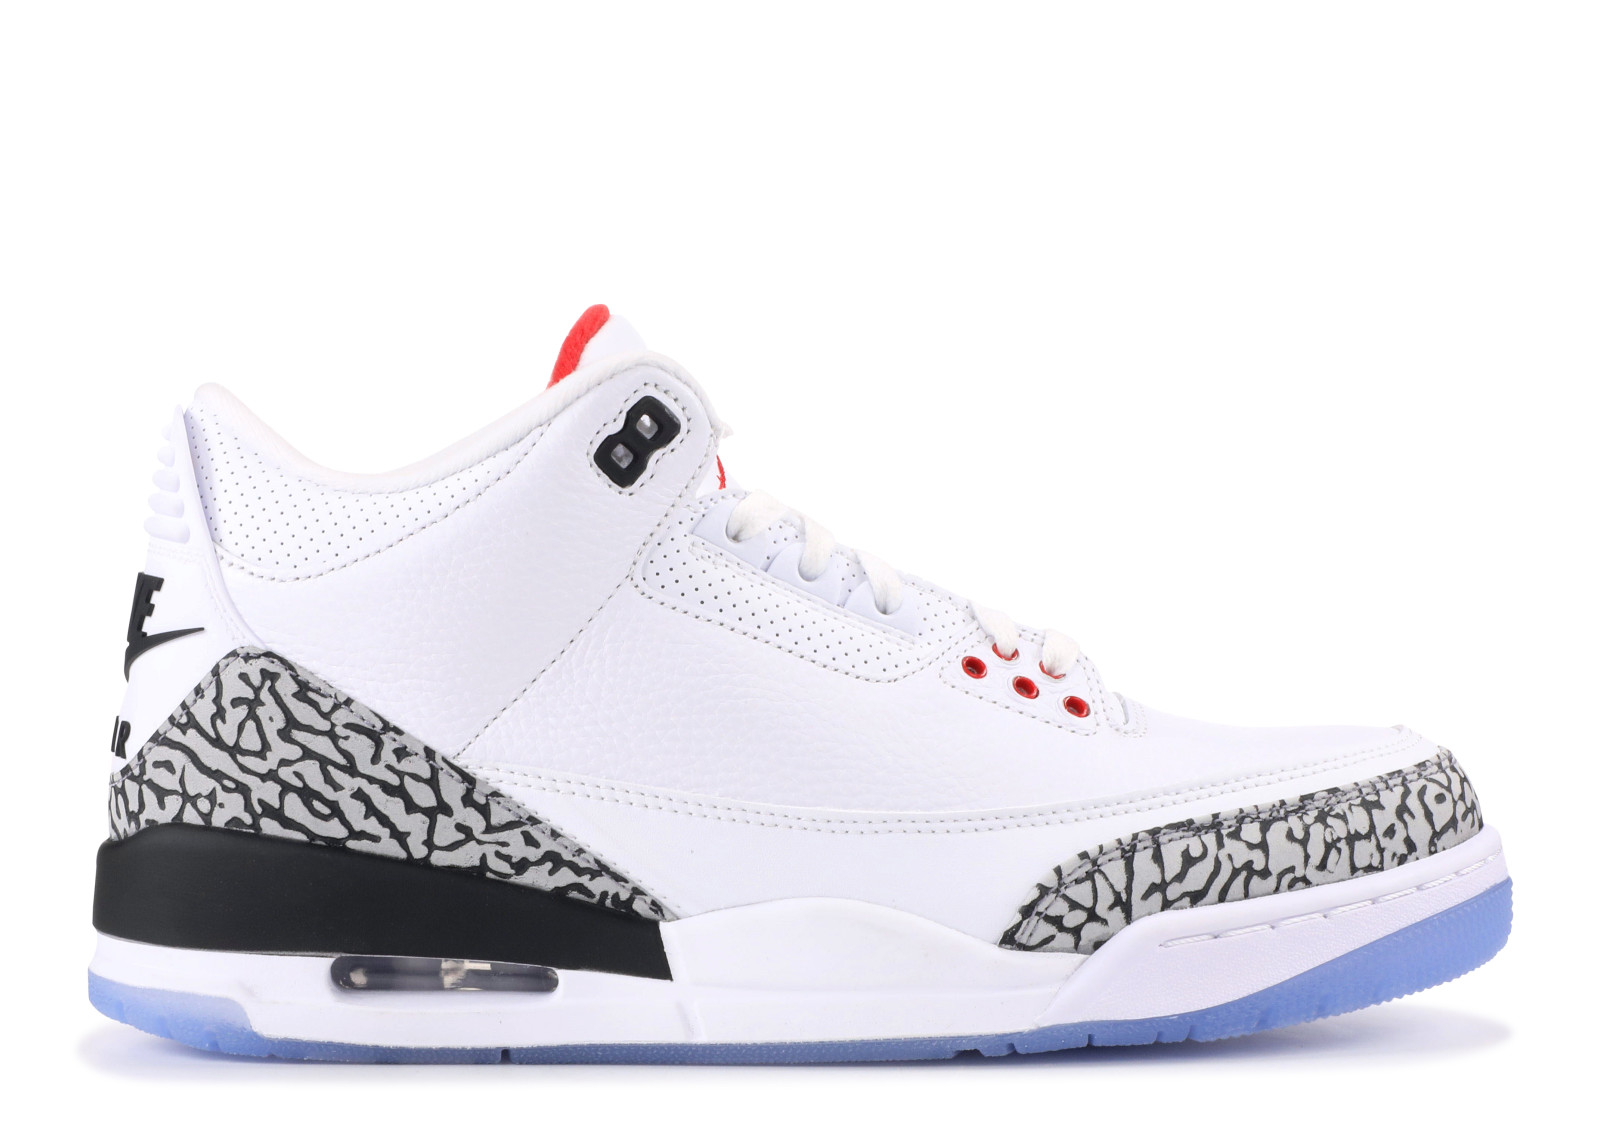 Air Jordan 3 Retro NRG Free Throw Line